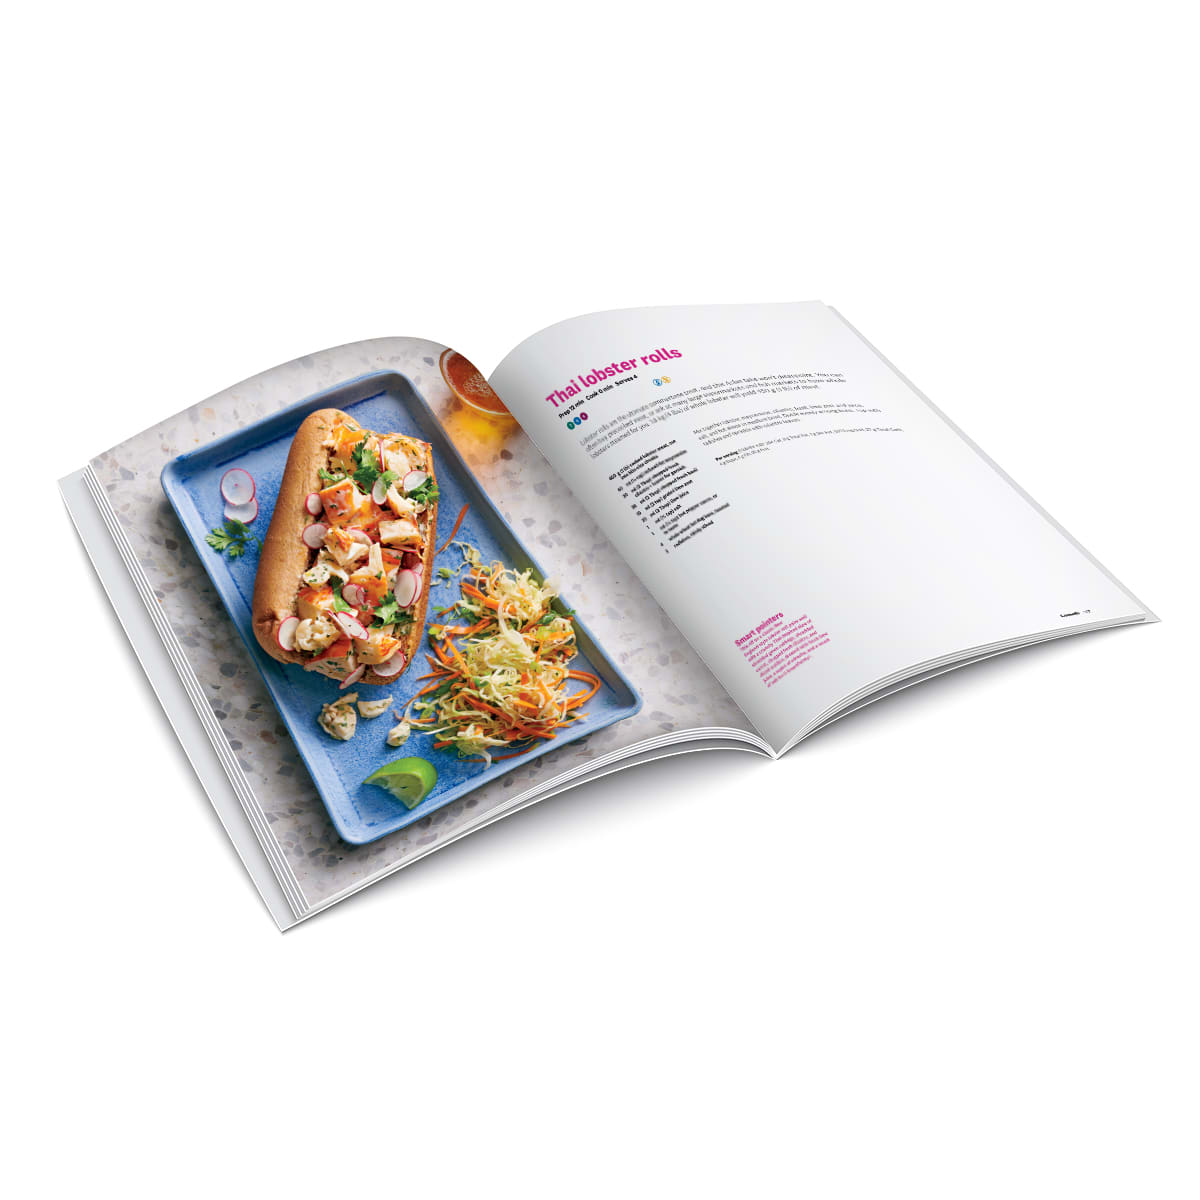 The myWW™ Program Cookbook: Hardcover Edition - English - alternate view